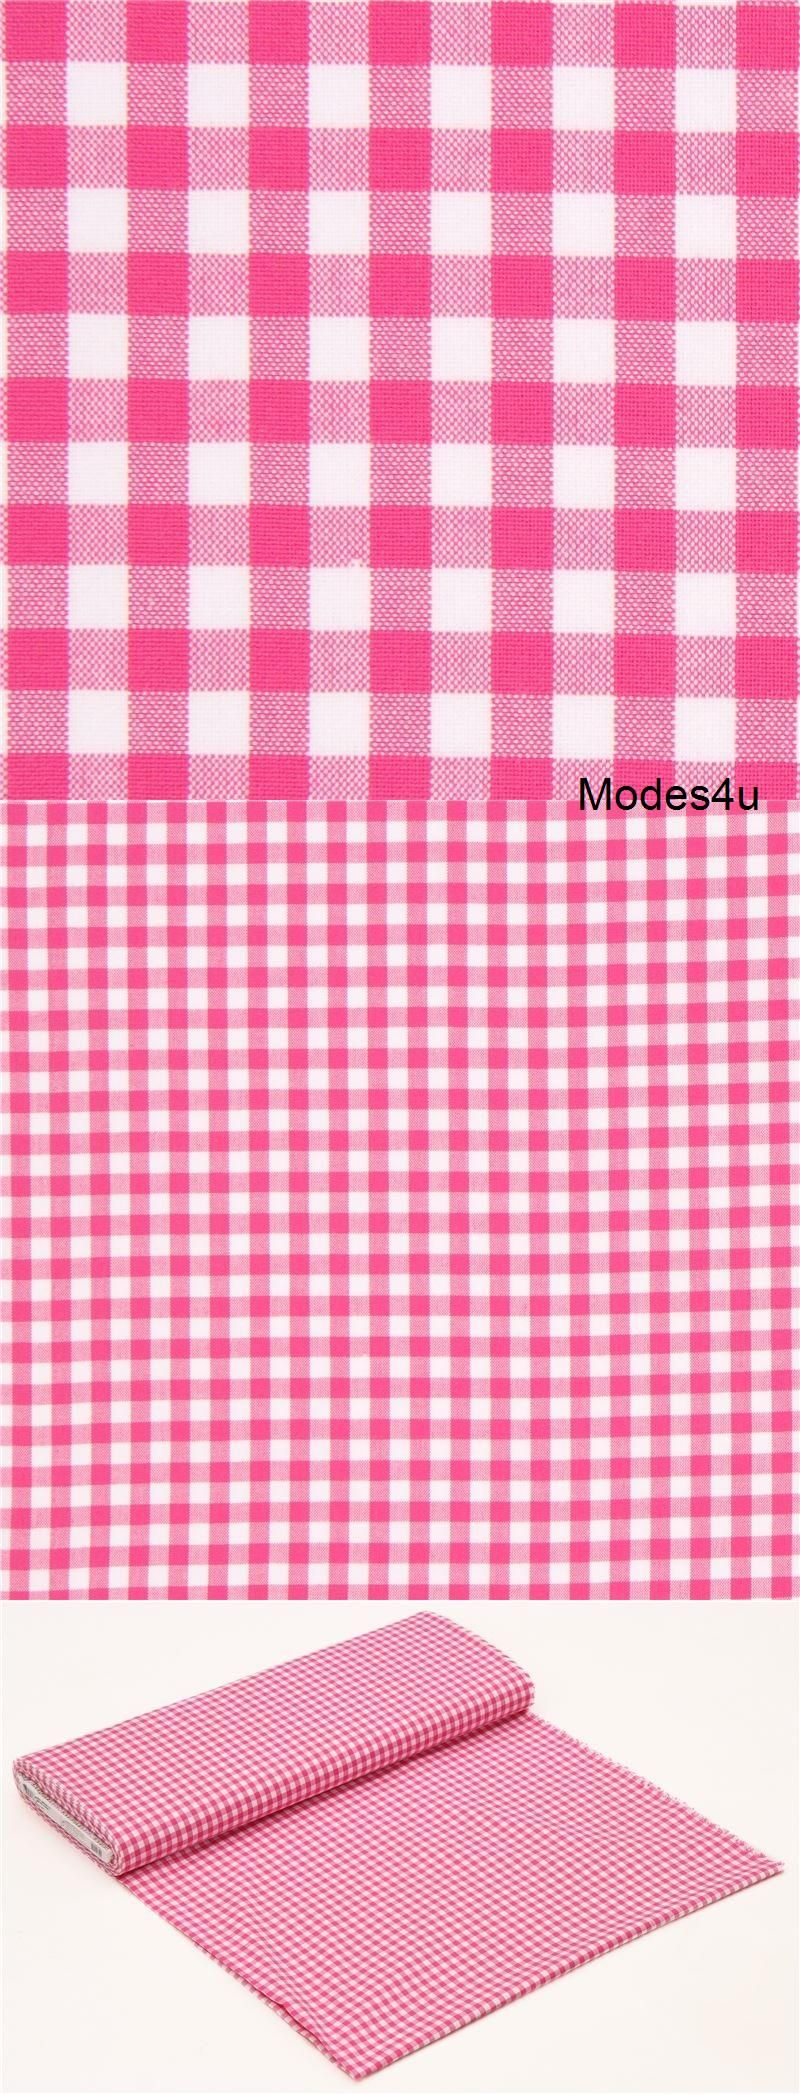 Pin by Modes4u on Kinderstoffe (DE) Hot pink white